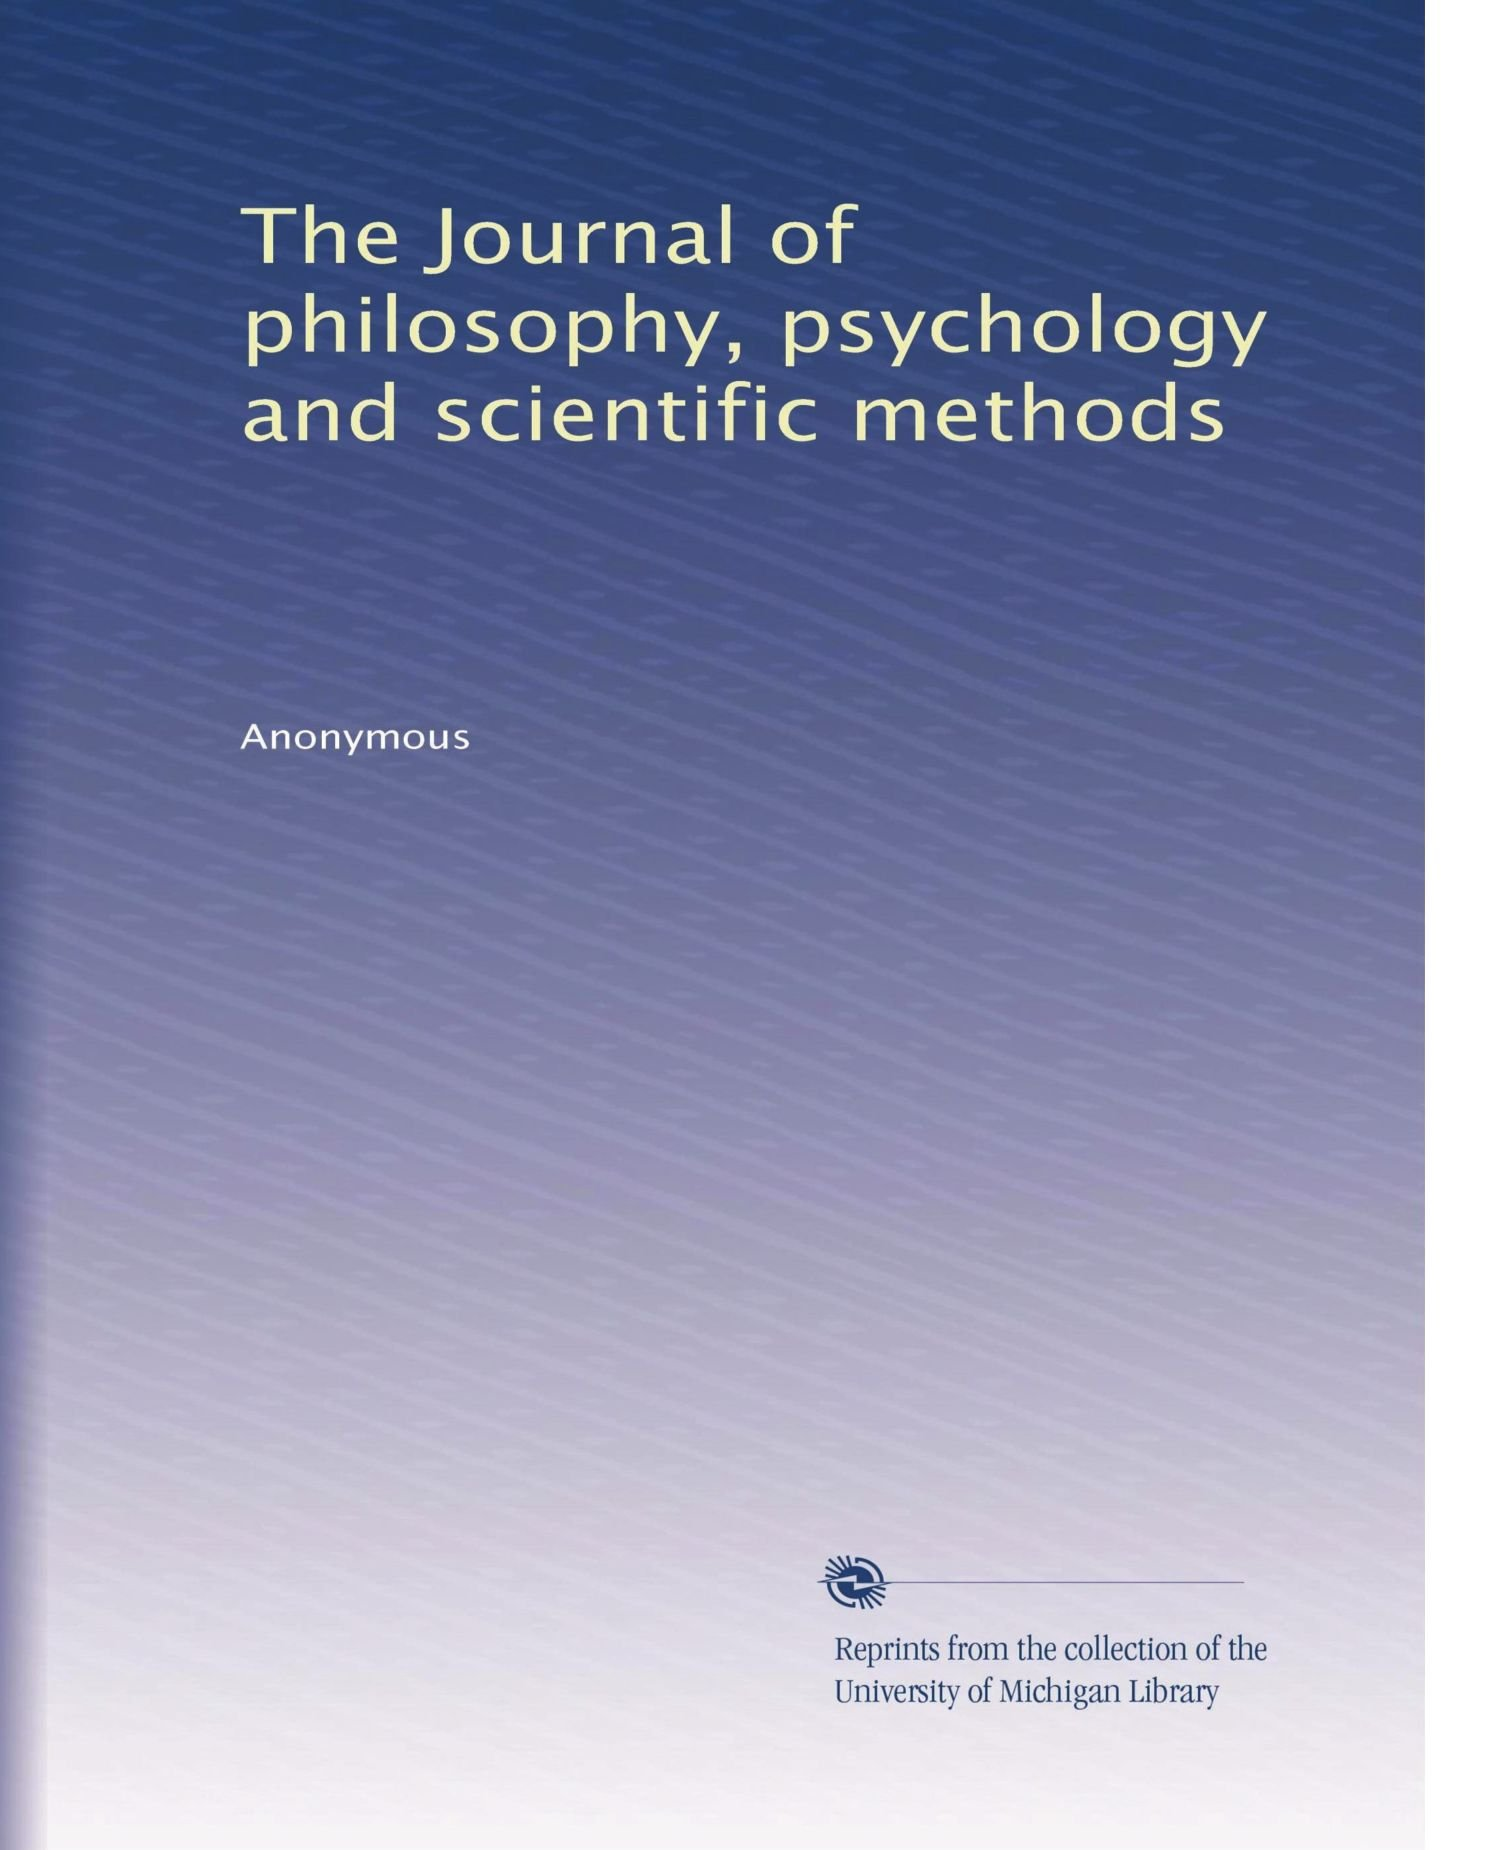 Download The Journal of philosophy, psychology and scientific methods (Volume 2) pdf